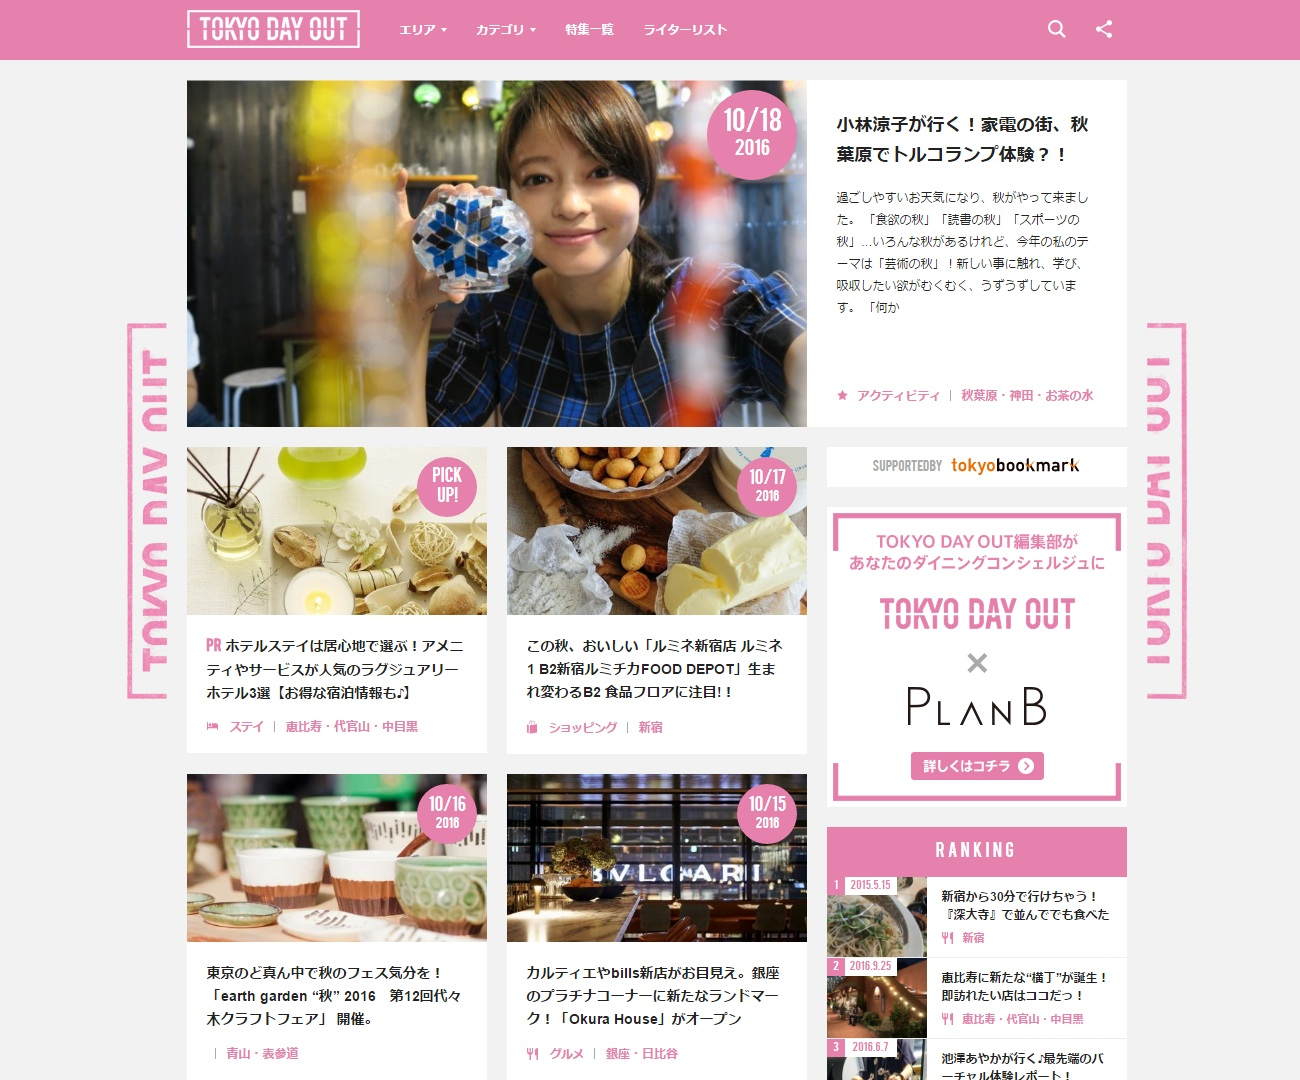 『TOKYO DAY OUT』 / WEBサイト